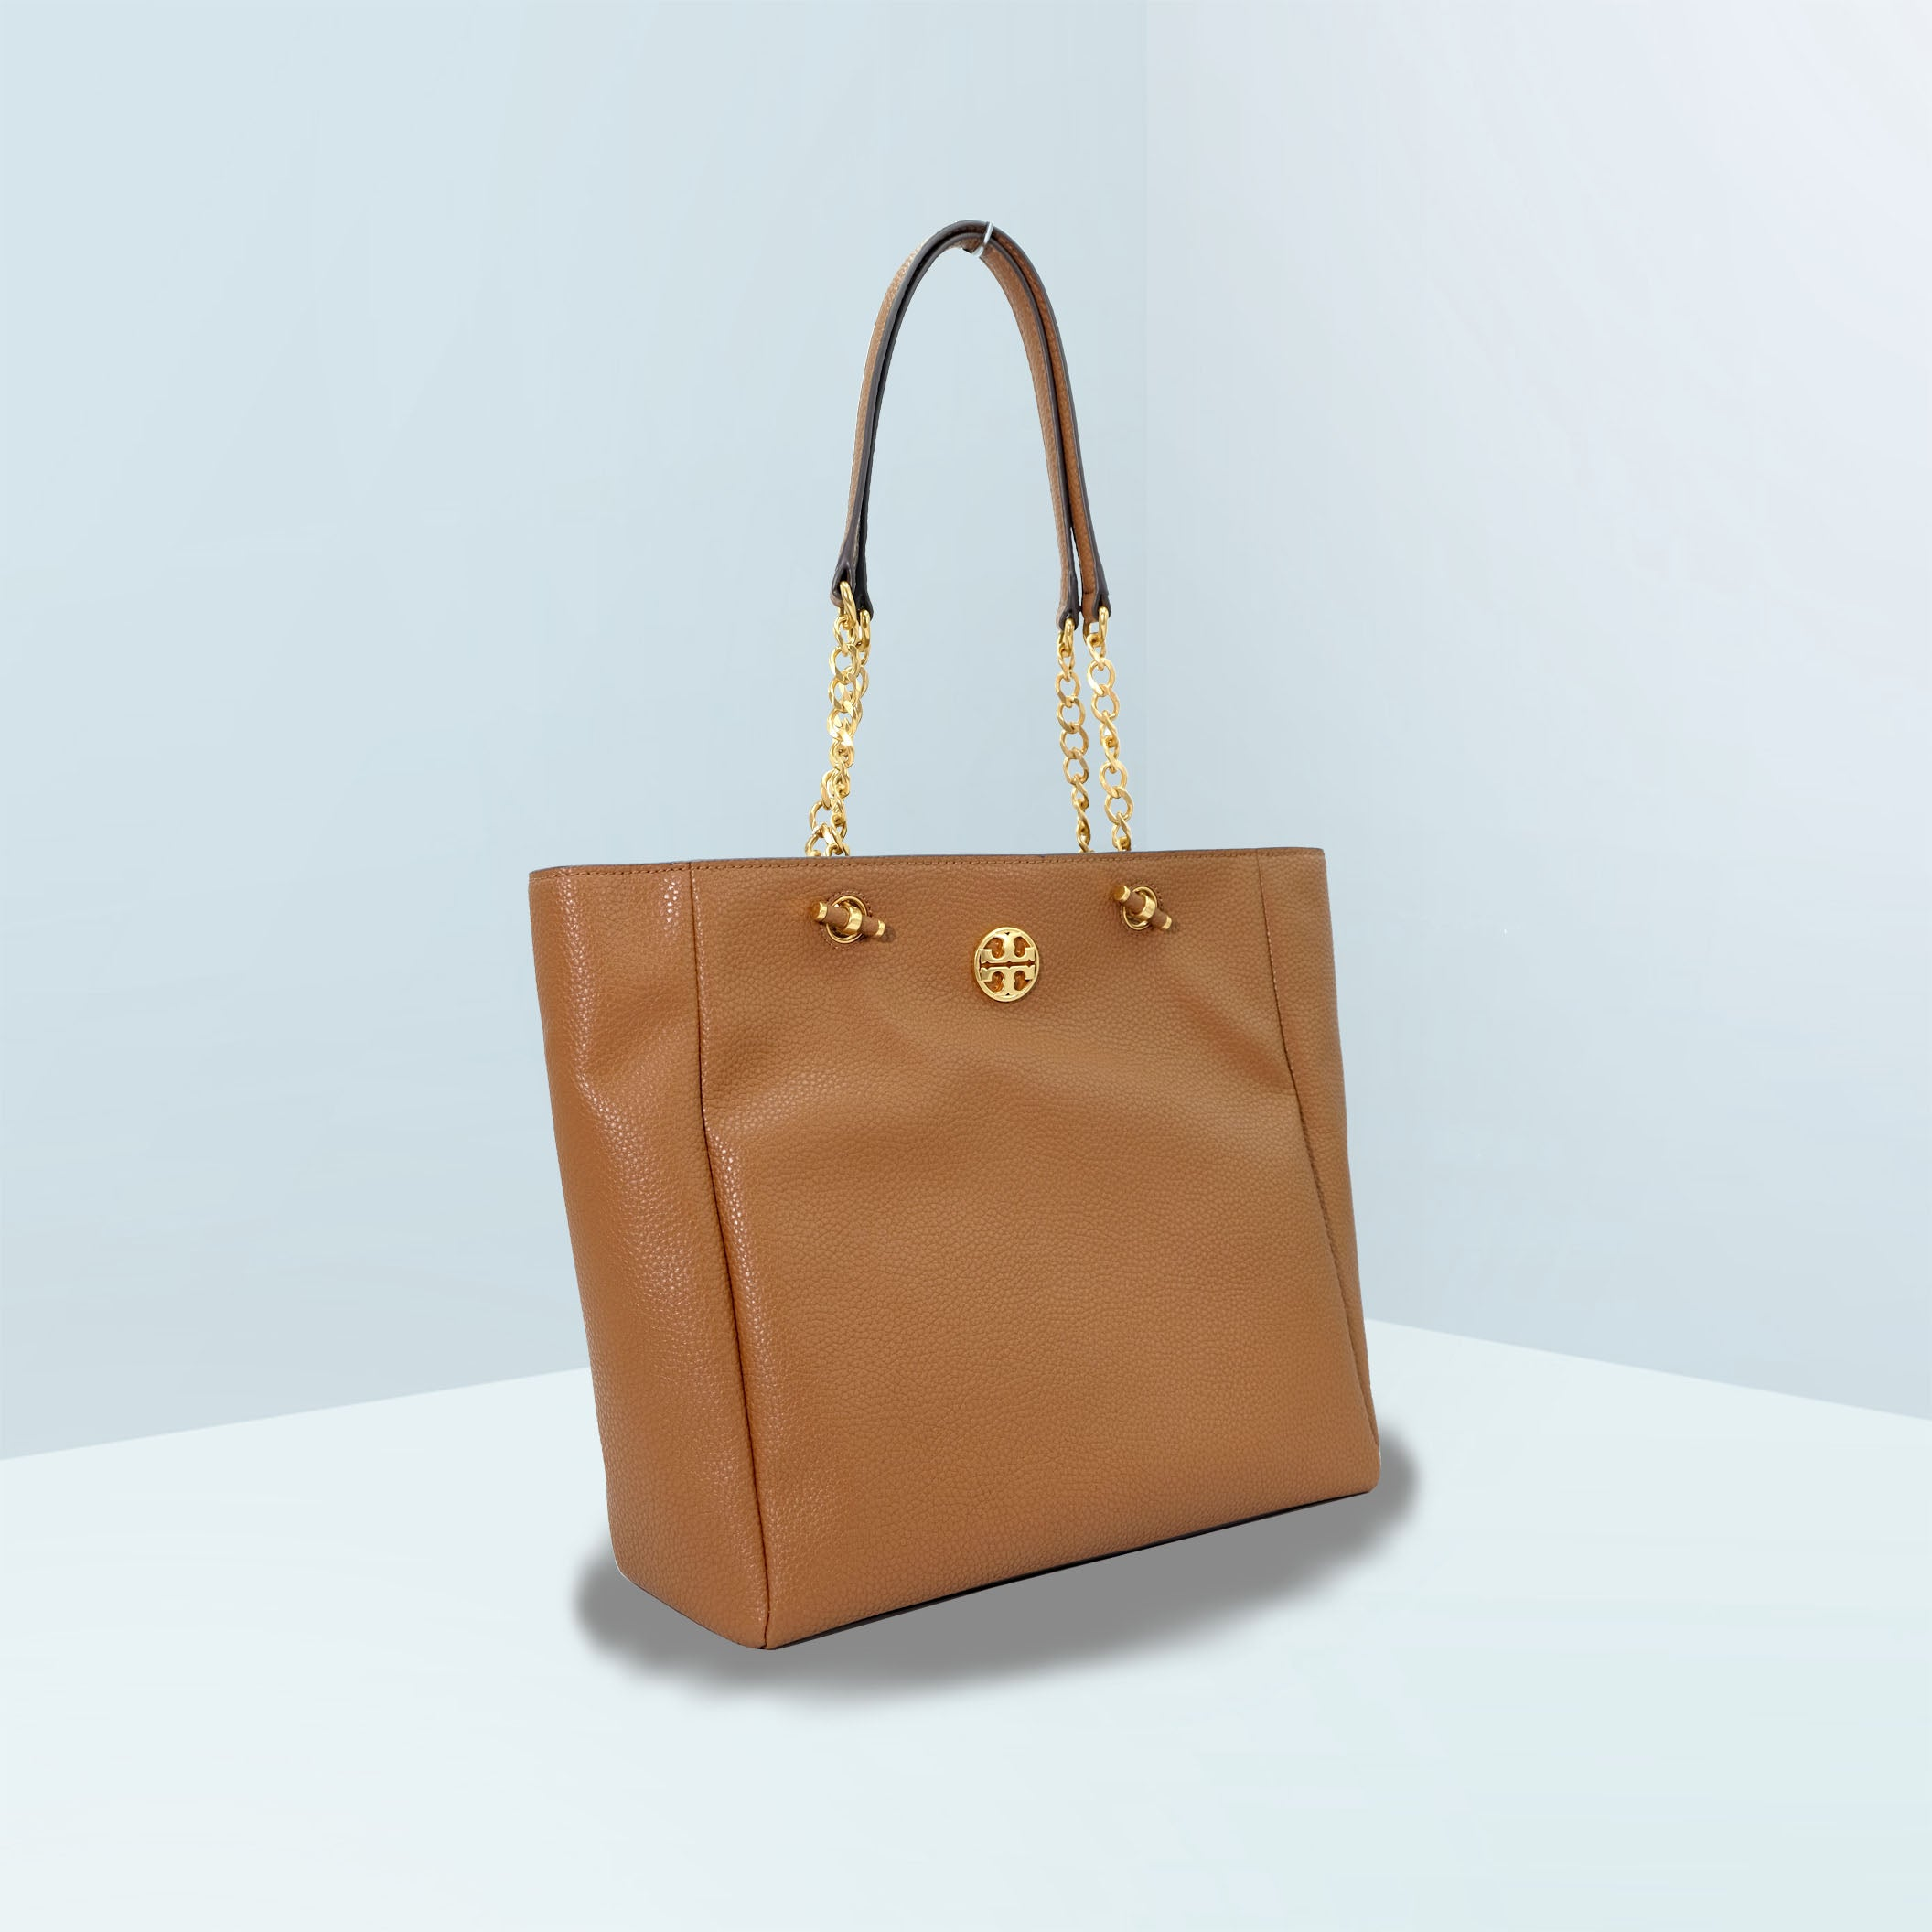 Chelsea Classic Leather Tote Bag